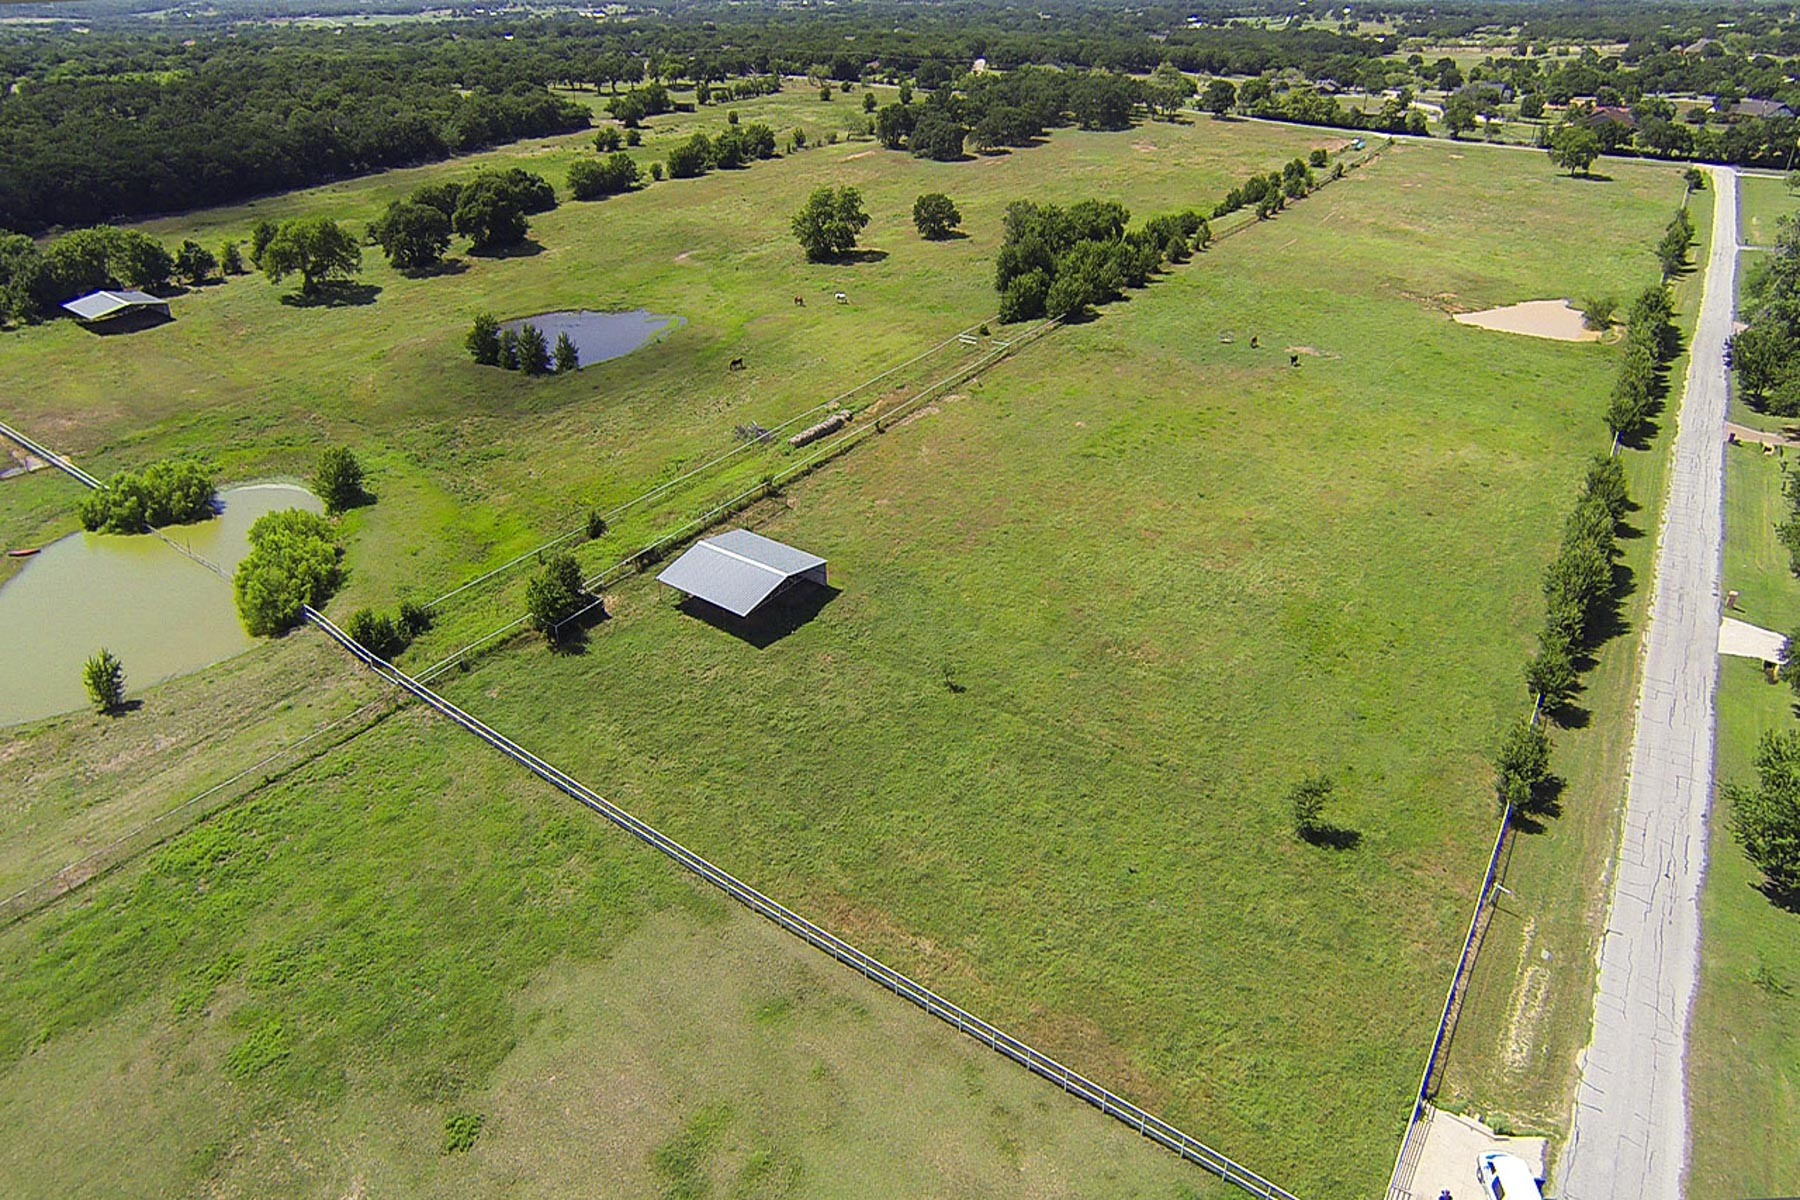 Land for Sale at Pristine 2 Acre Lot 1080 Rockgate Rd S Bartonville, Texas, 76226 United States